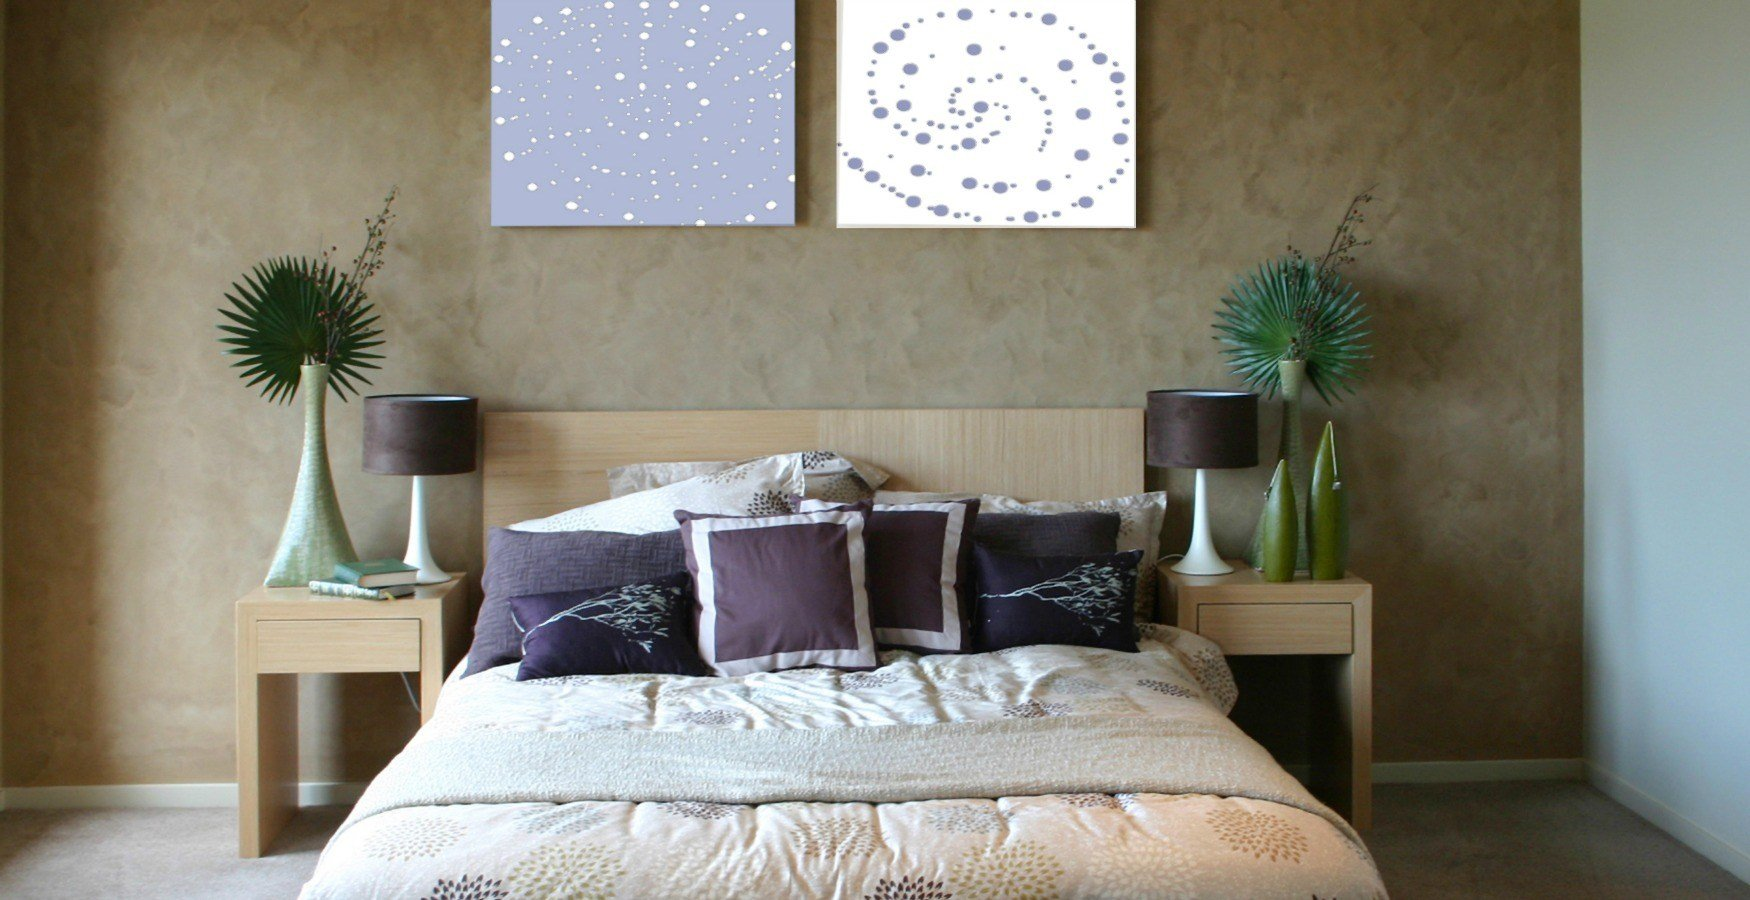 Best Sleep Better With These Simple Feng Shui Bedroom Tips With Pictures